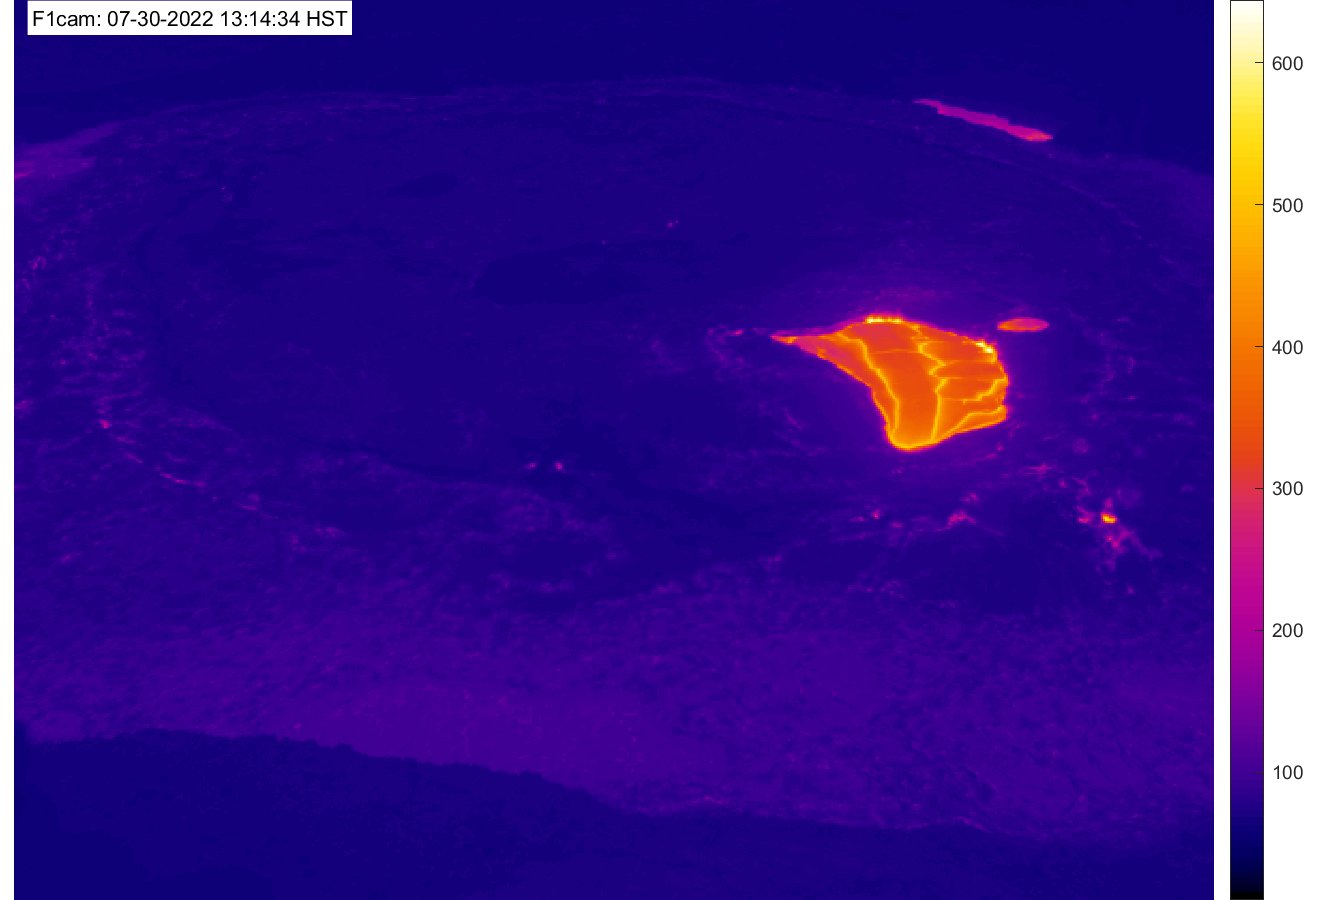 Thermal image of Halemaʻumaʻu and lava lake [F1cam] preview image